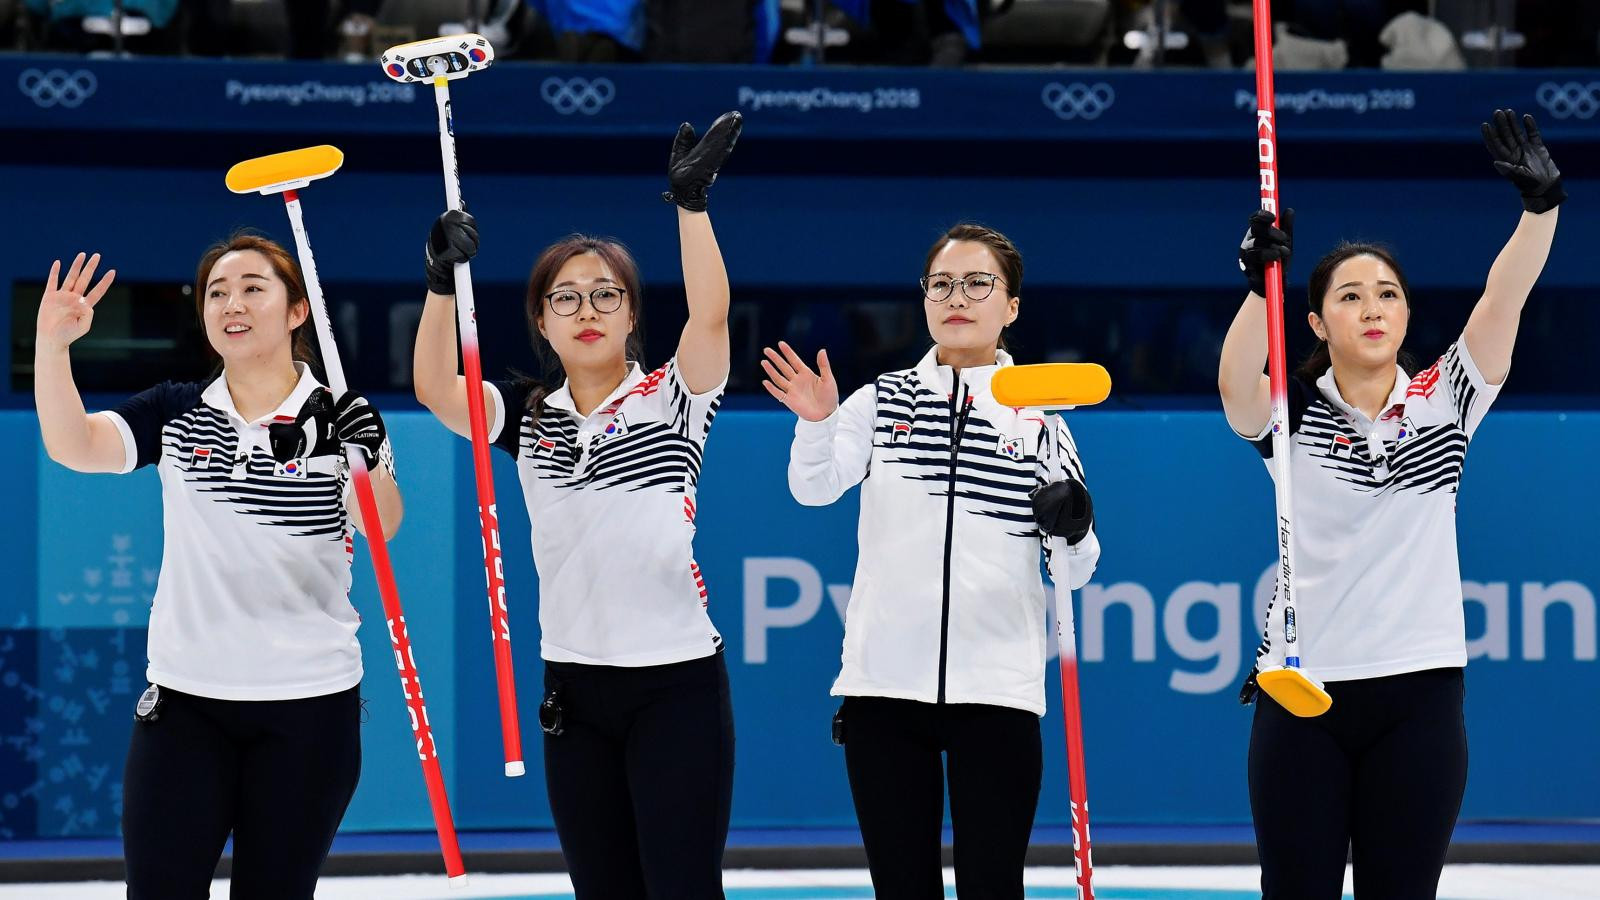 The South Korean team that won the Olympic silver medals at Pyeongchang 2018 are due to take part in the South Korea-China-Japan Women's Curling Competition now set to go ahead without a representative from Japan ©Getty Images